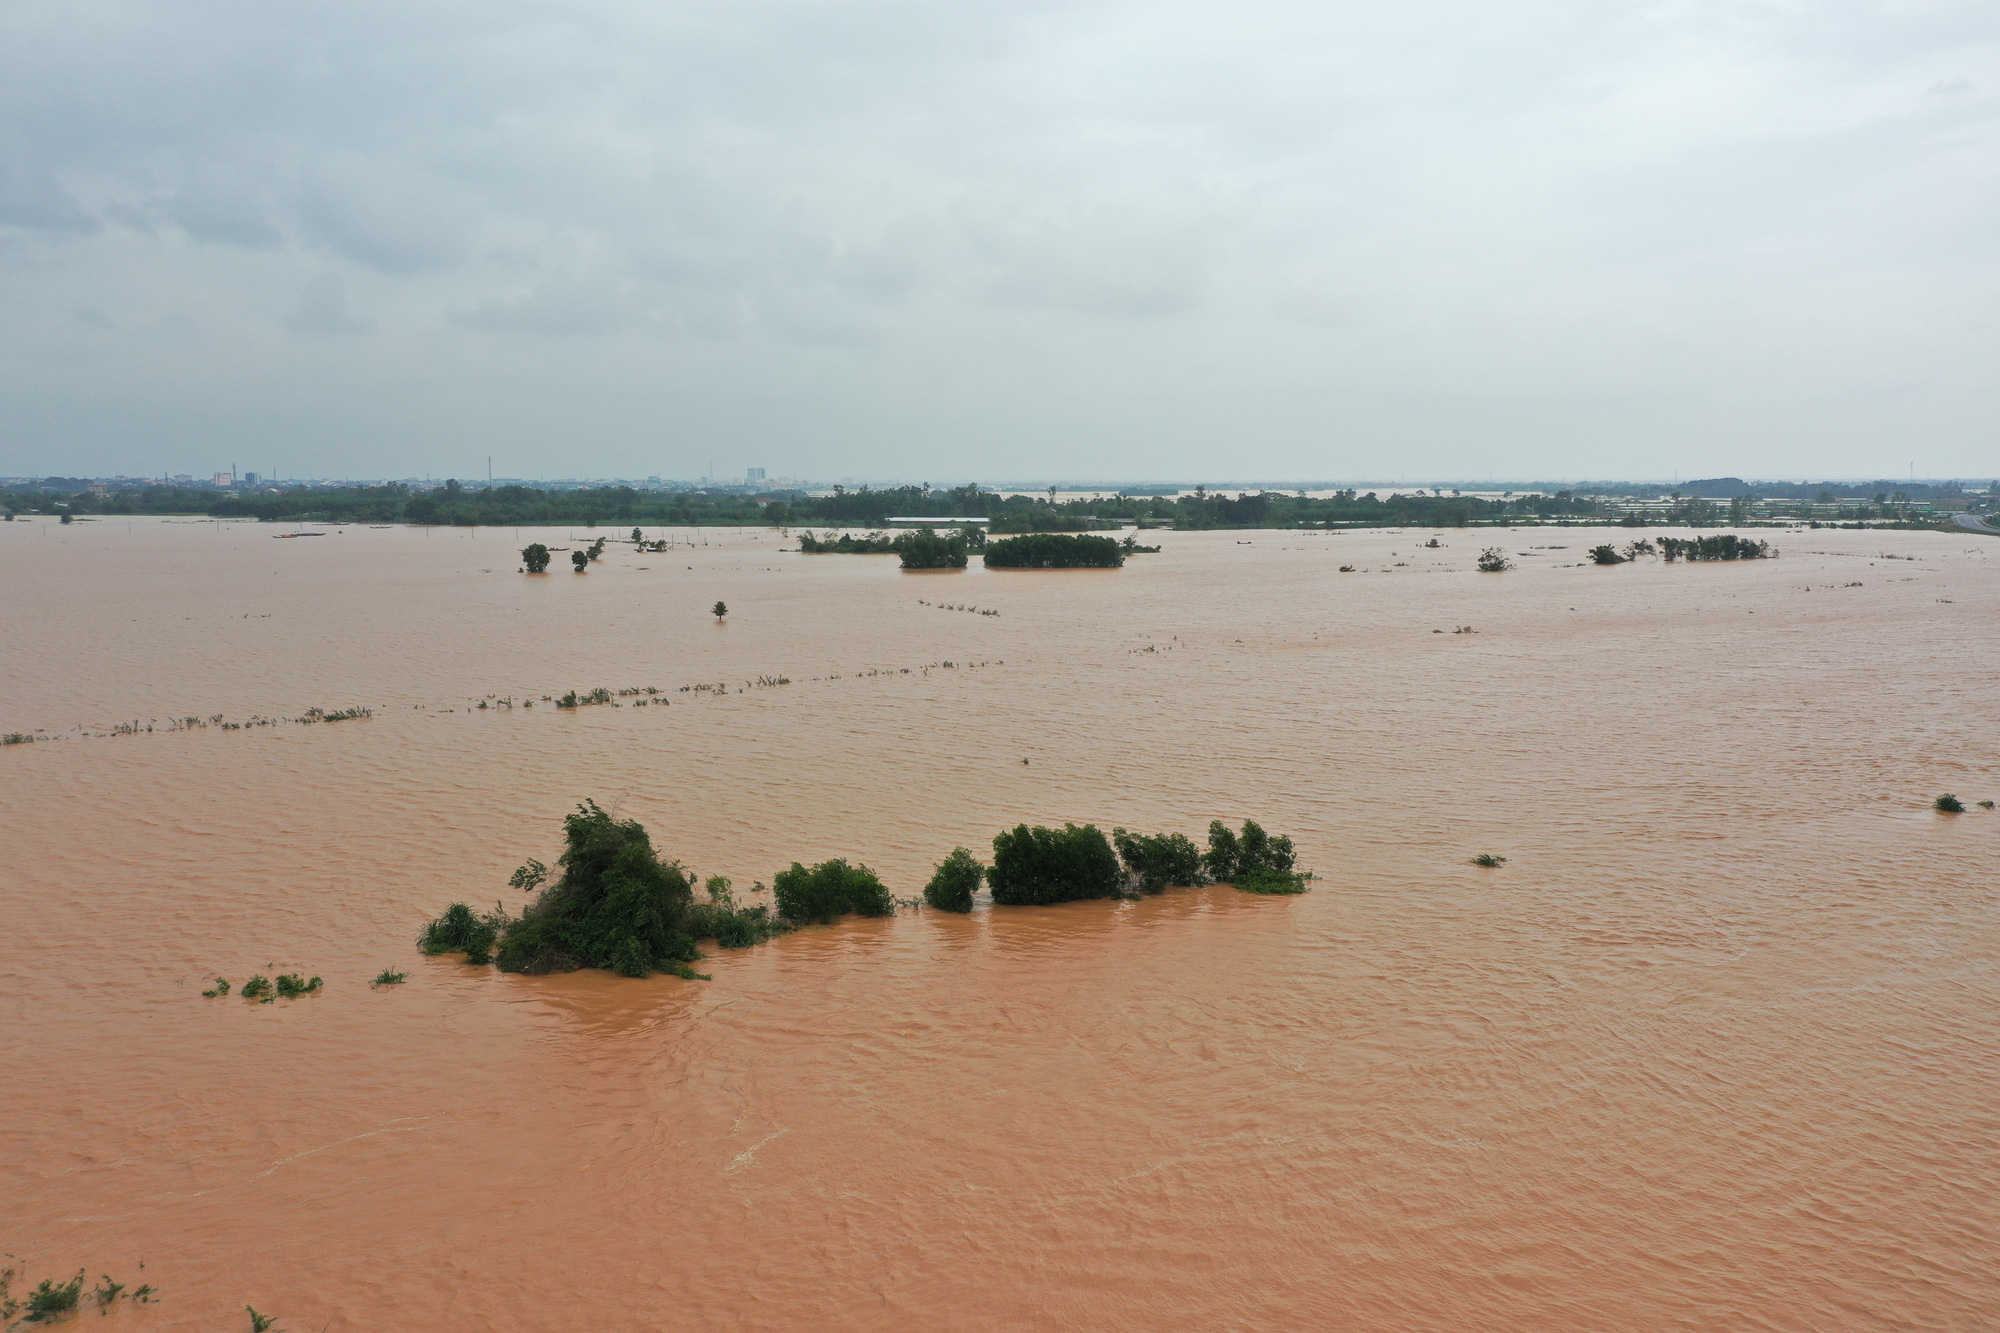 Trieu Phong District in Quang Tri Province, Vietnam is submerged on October 10, 2020. Photo: Truong Trung / Tuoi Tre